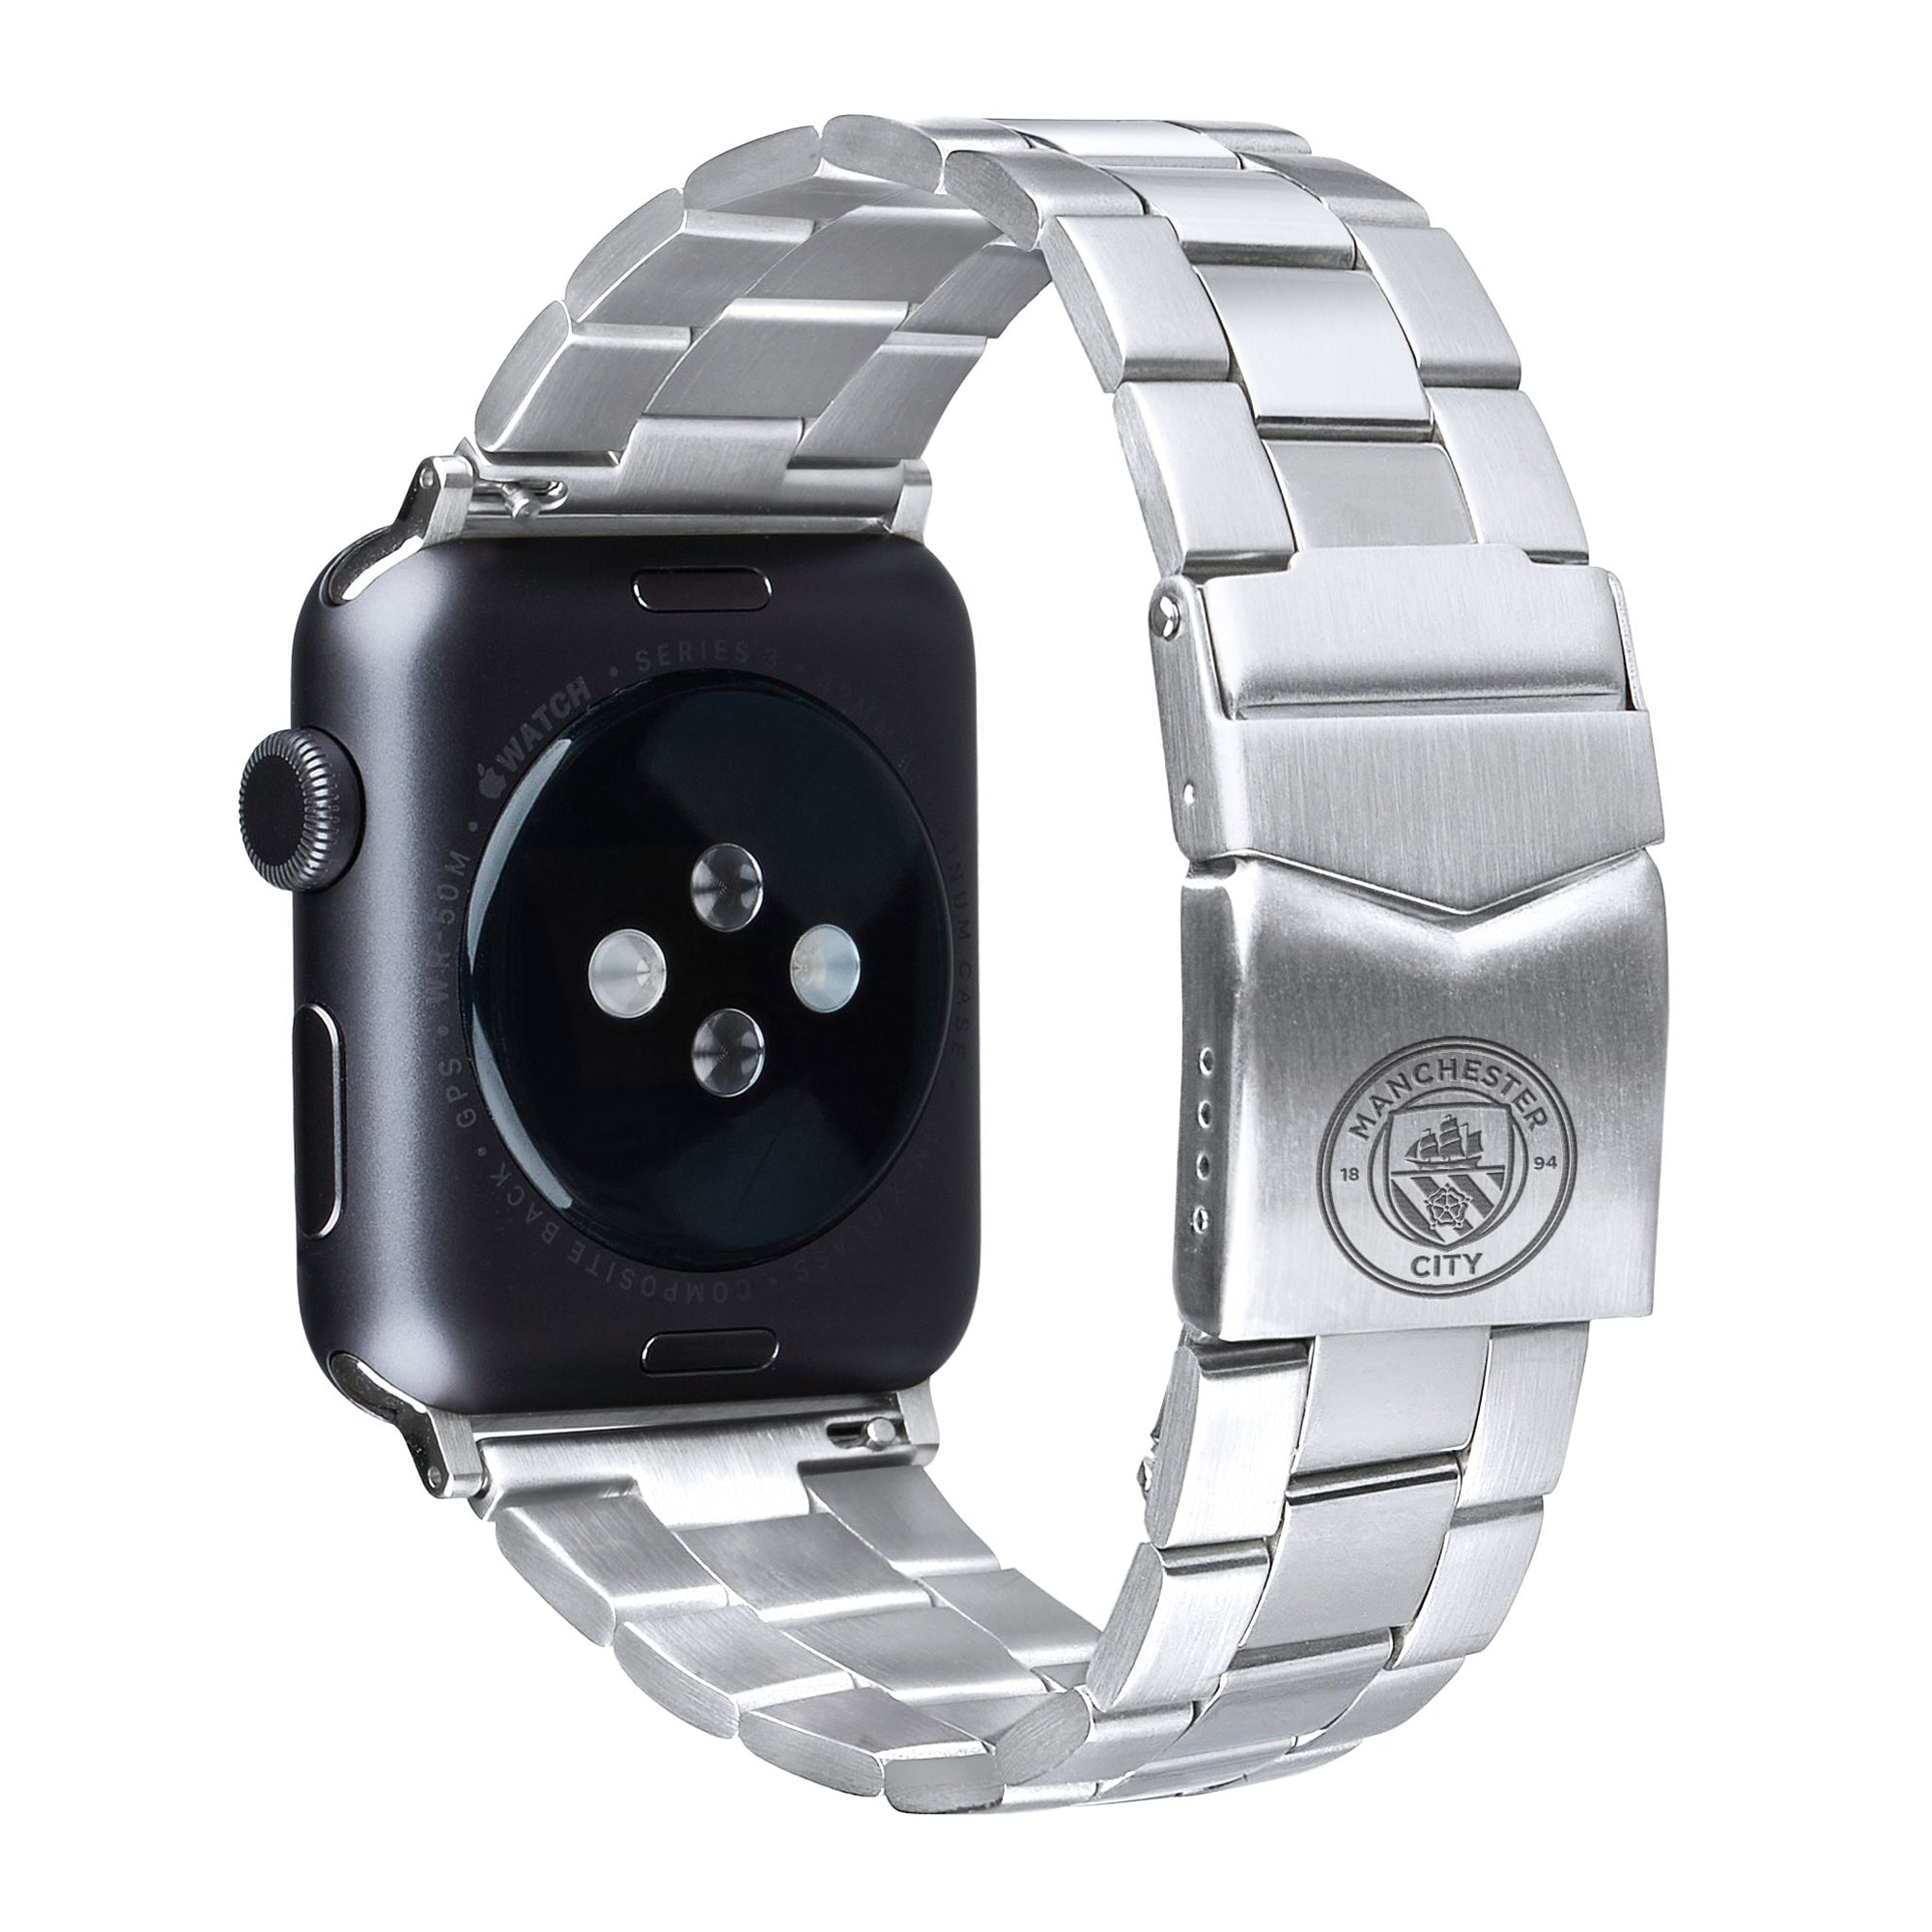 Manchester City FC Stainless Steel Link Style Apple Watch Band - AffinityBands